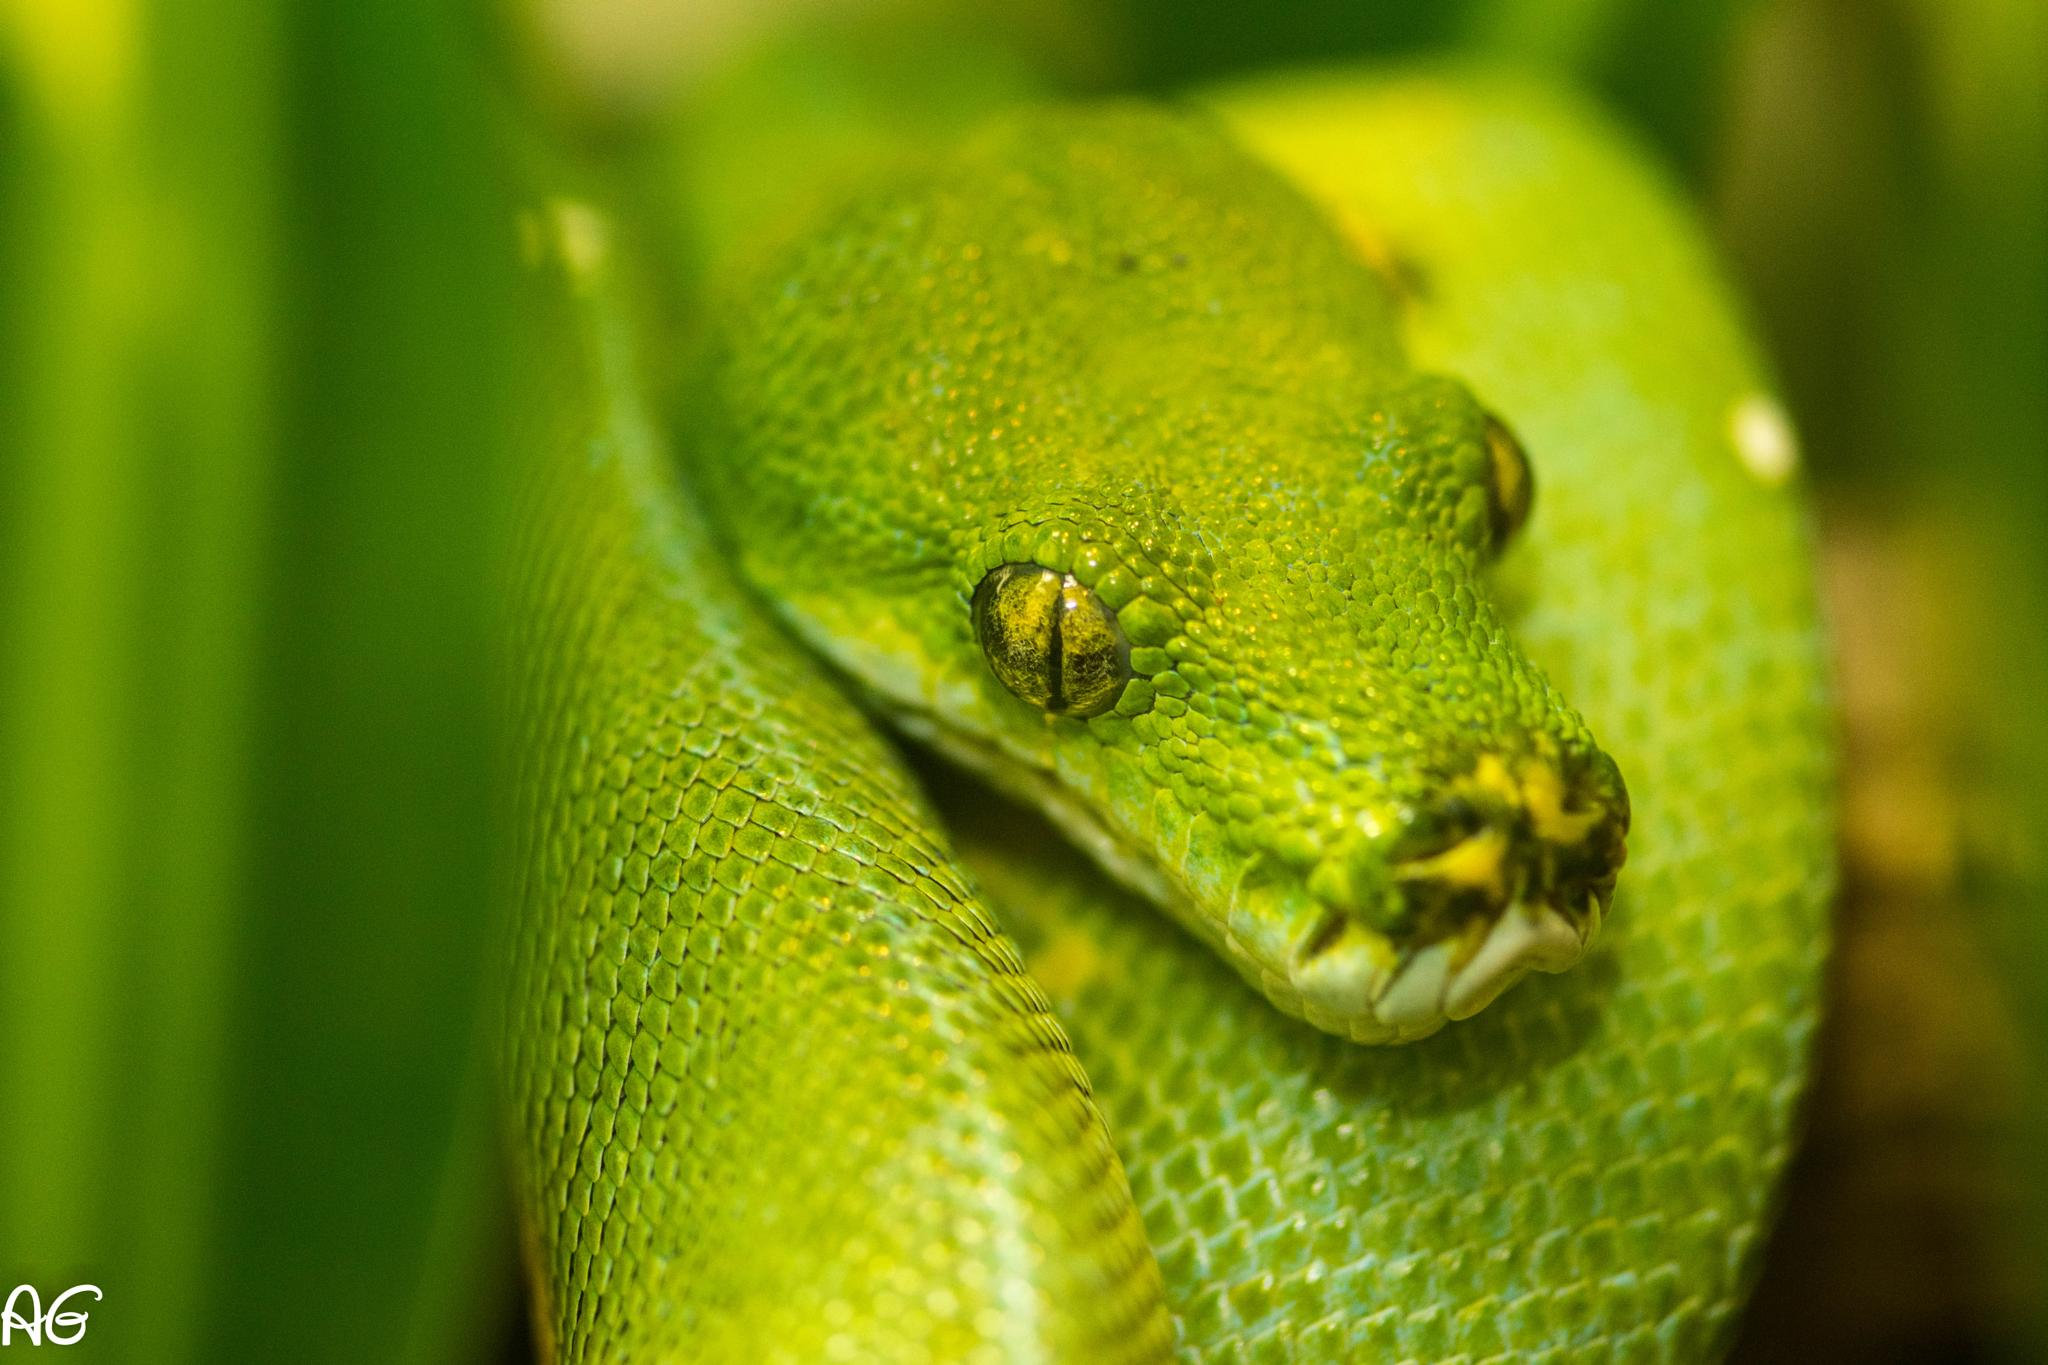 Snake by Andy Ghosh